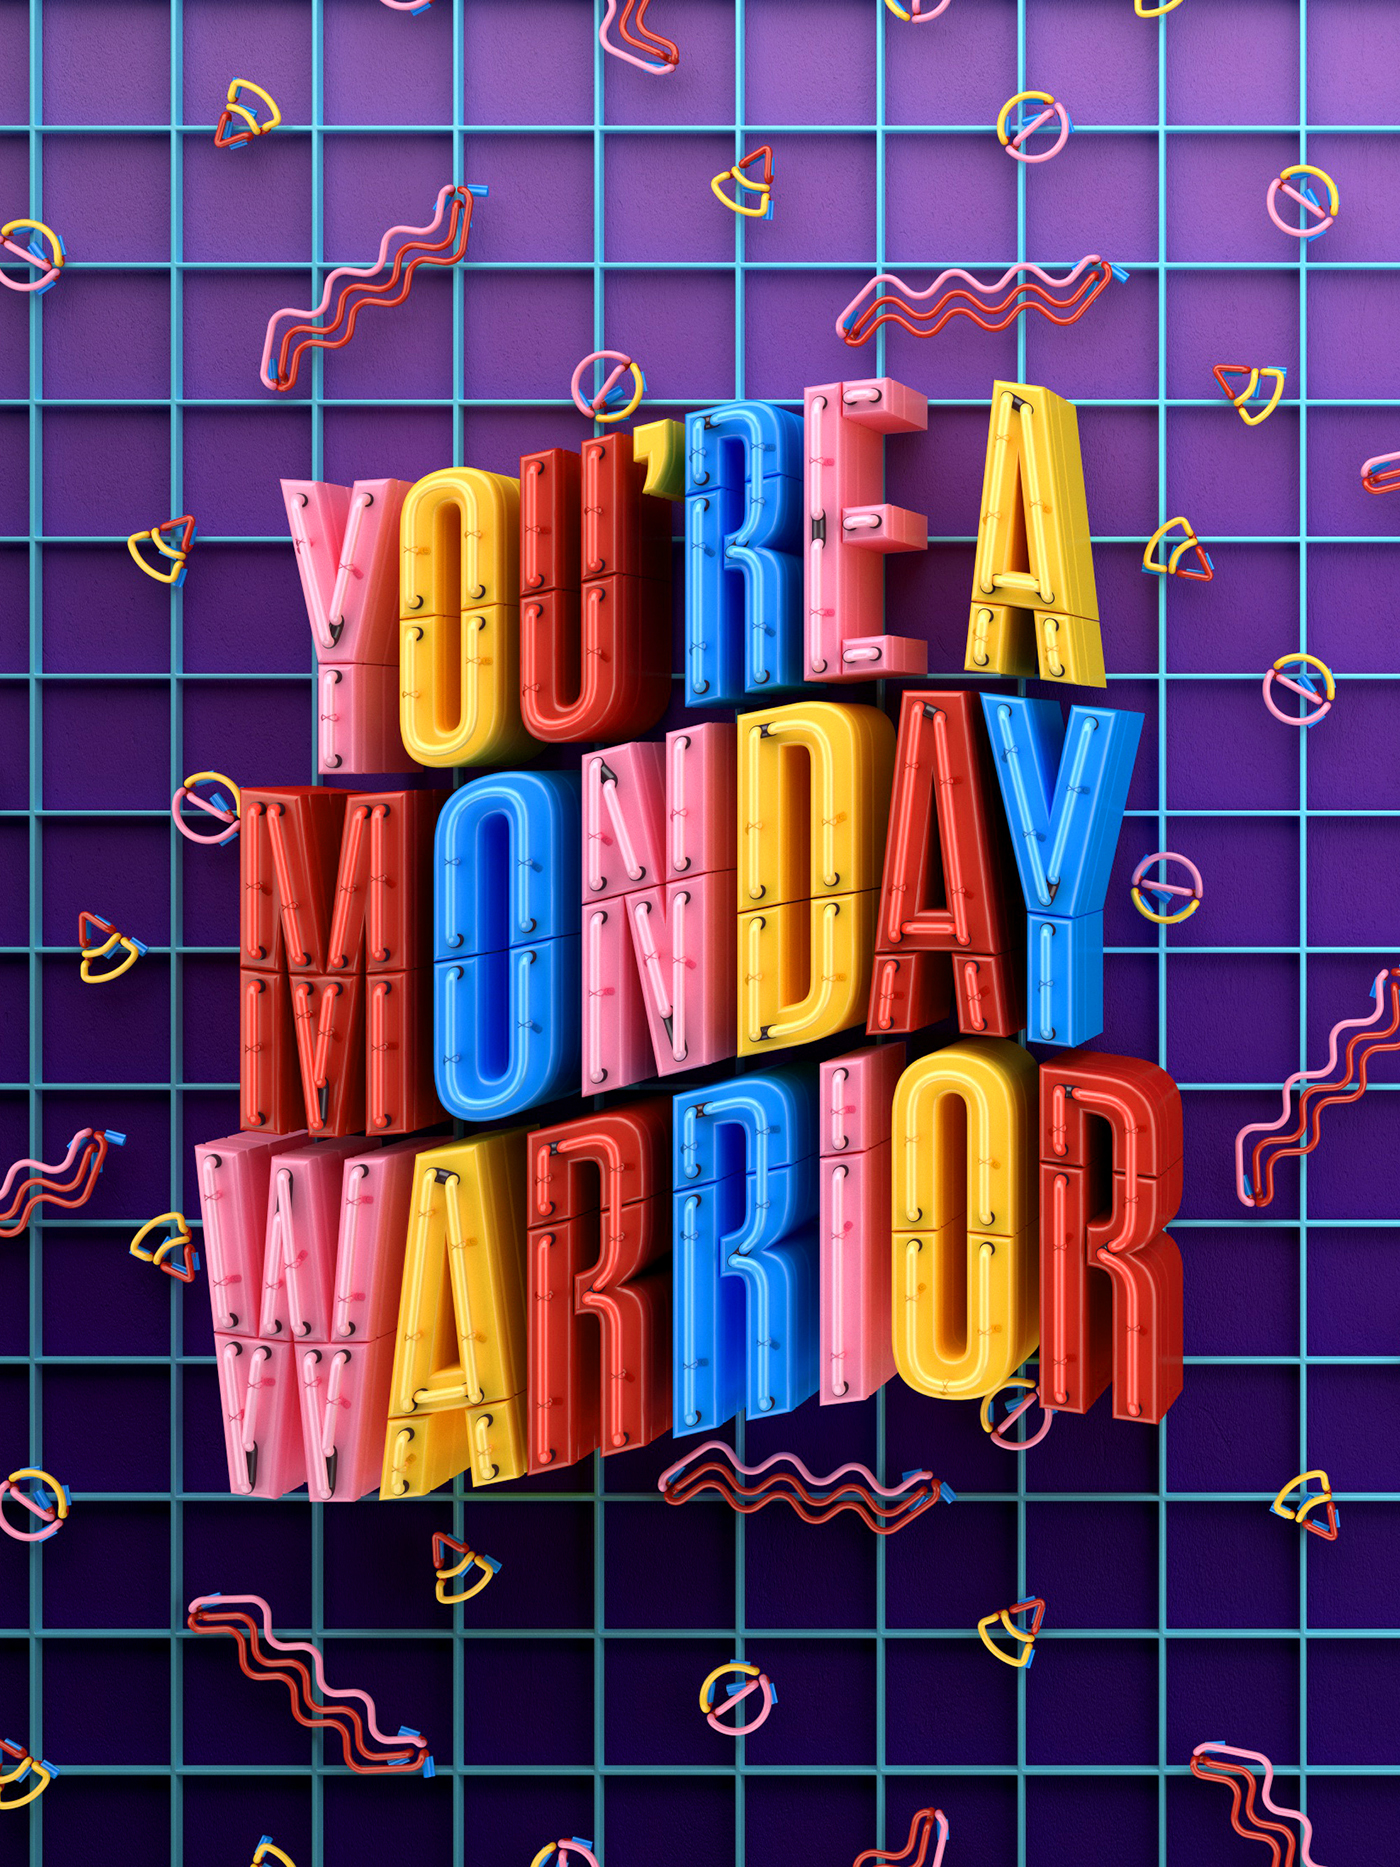 MONDAY WARRIOR BEHANCE